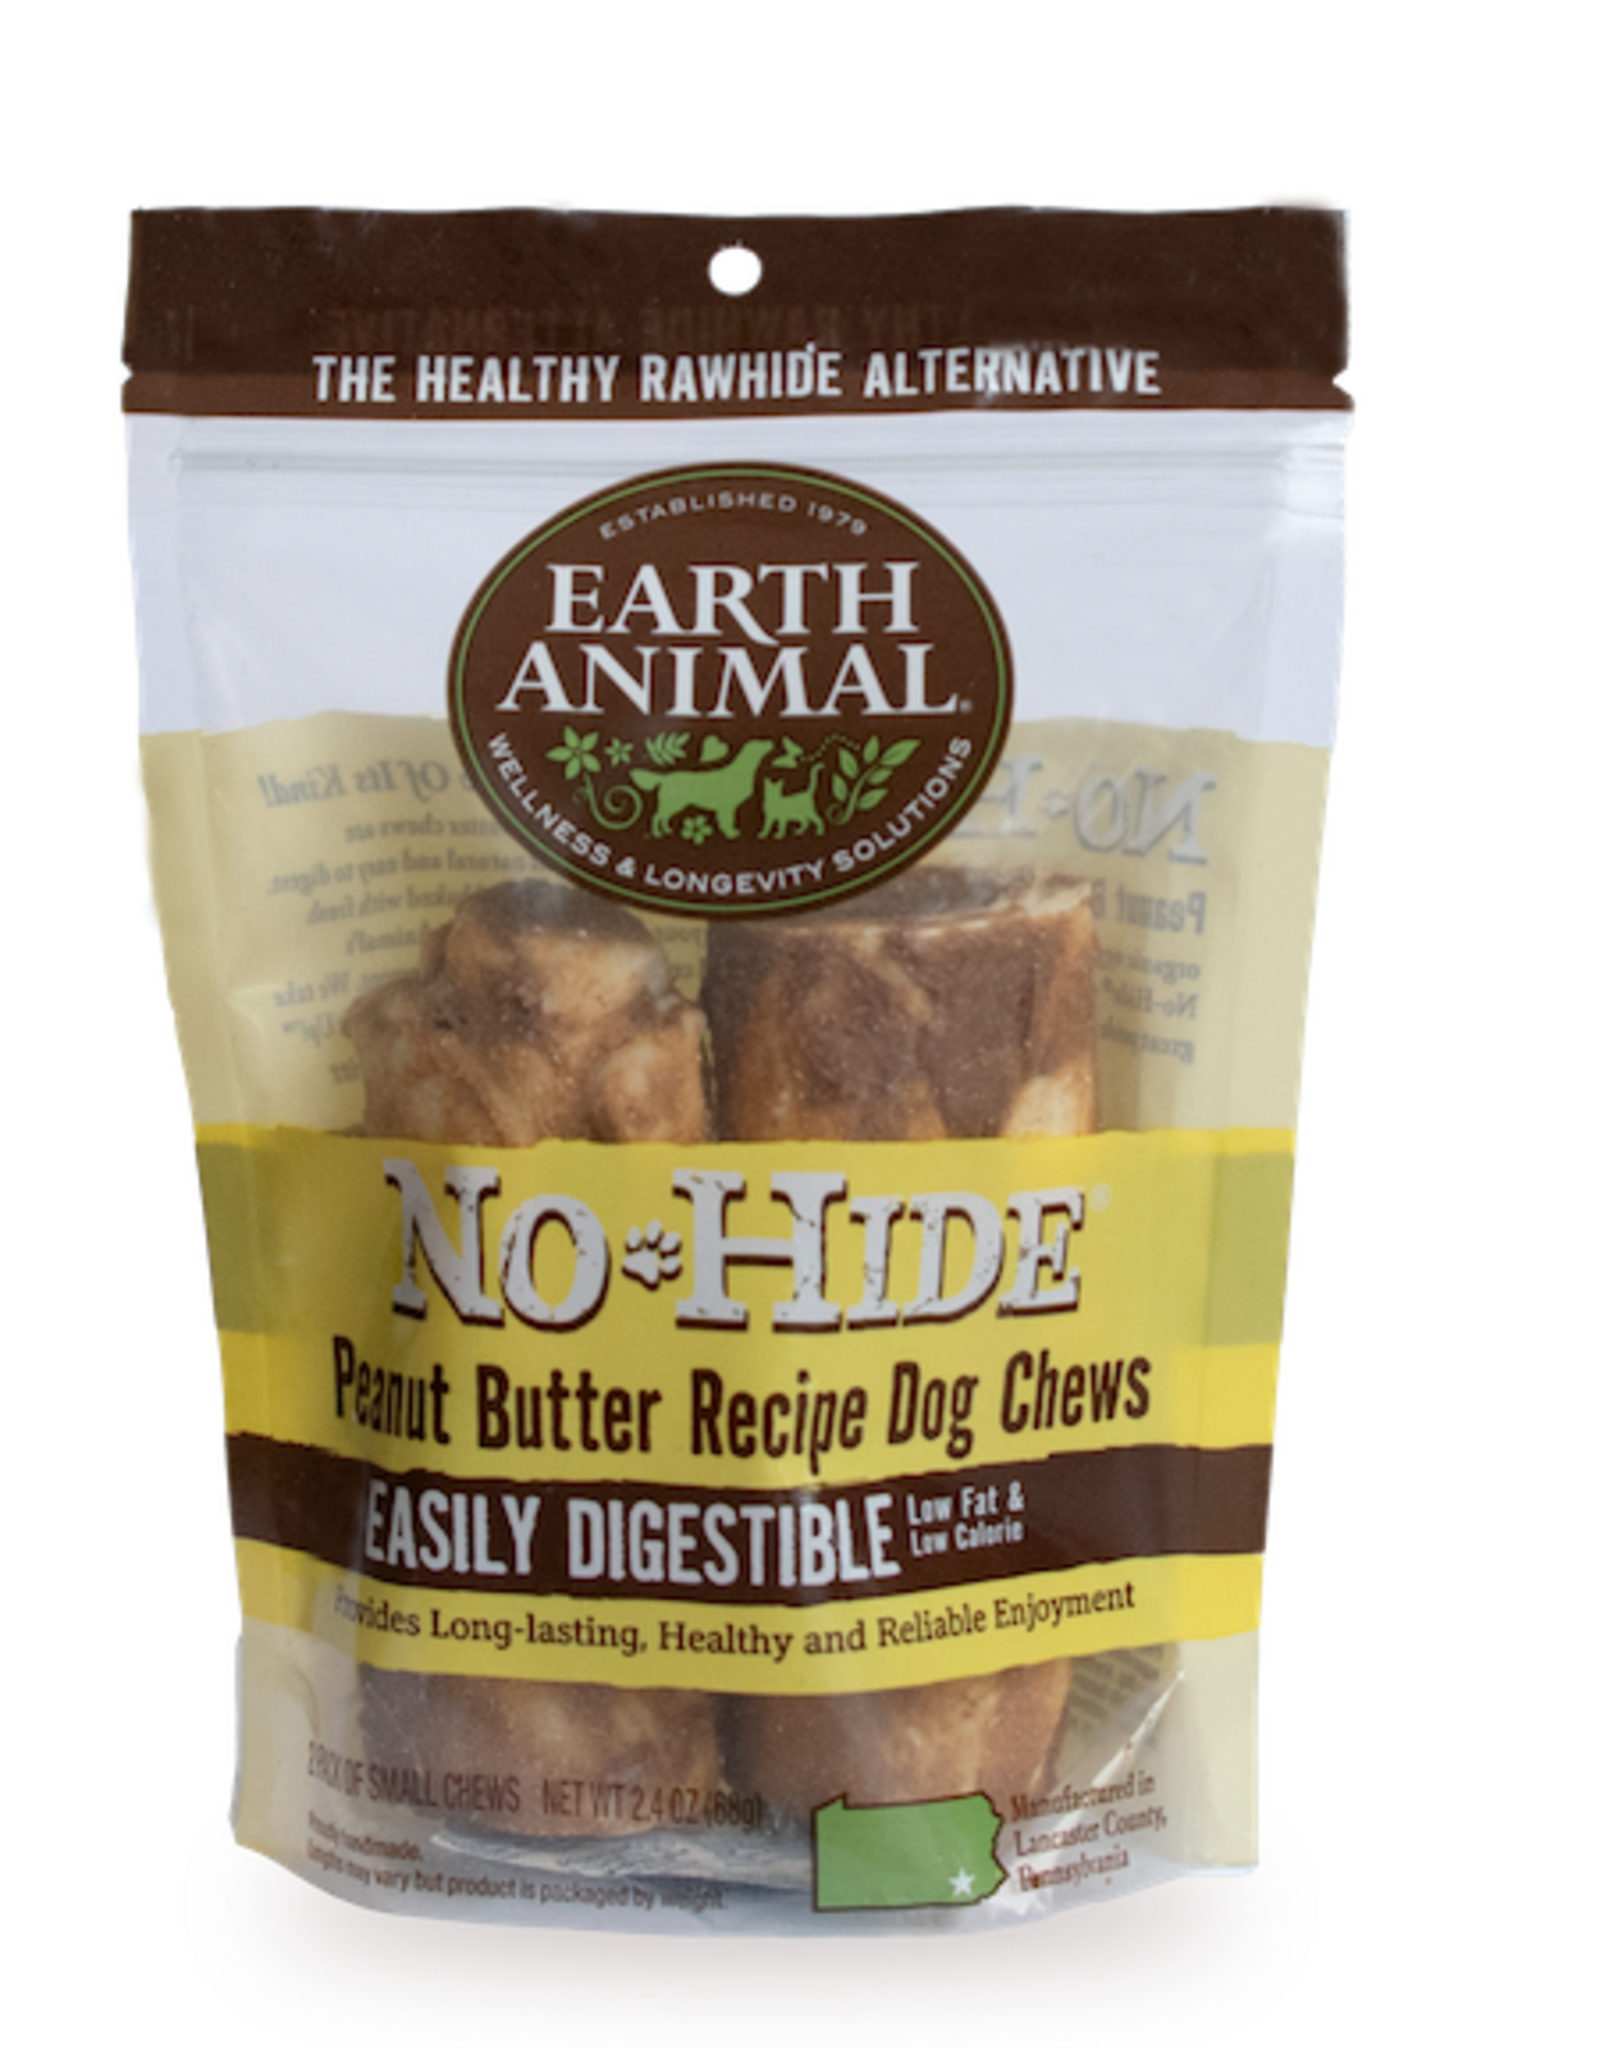 Earth Animal Earth Animal No-Hide Peanut Butter